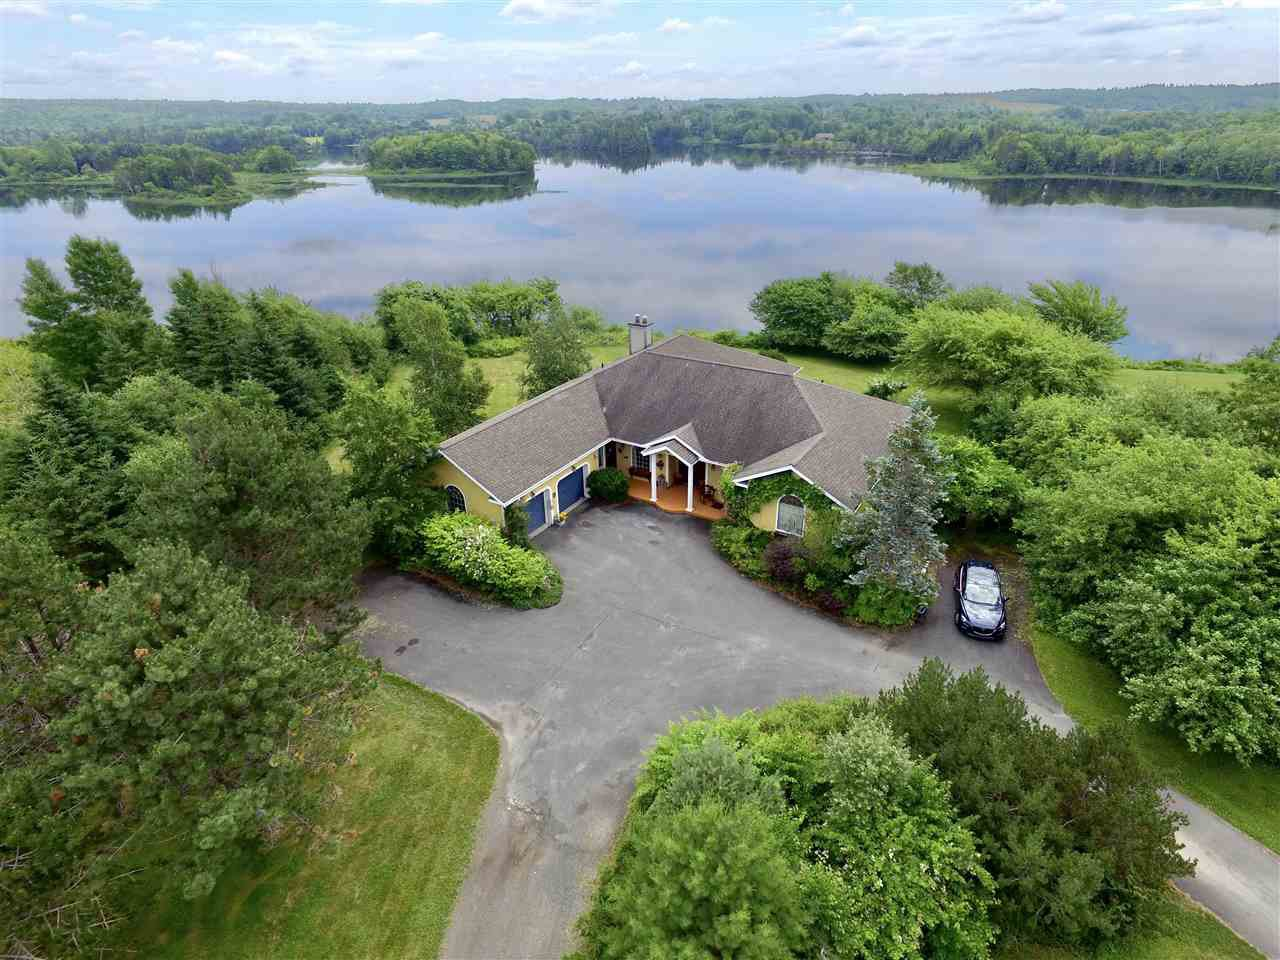 Main Photo: 797 Coxheath Road in Sydney: 202-Sydney River / Coxheath Residential for sale (Cape Breton)  : MLS®# 201926985